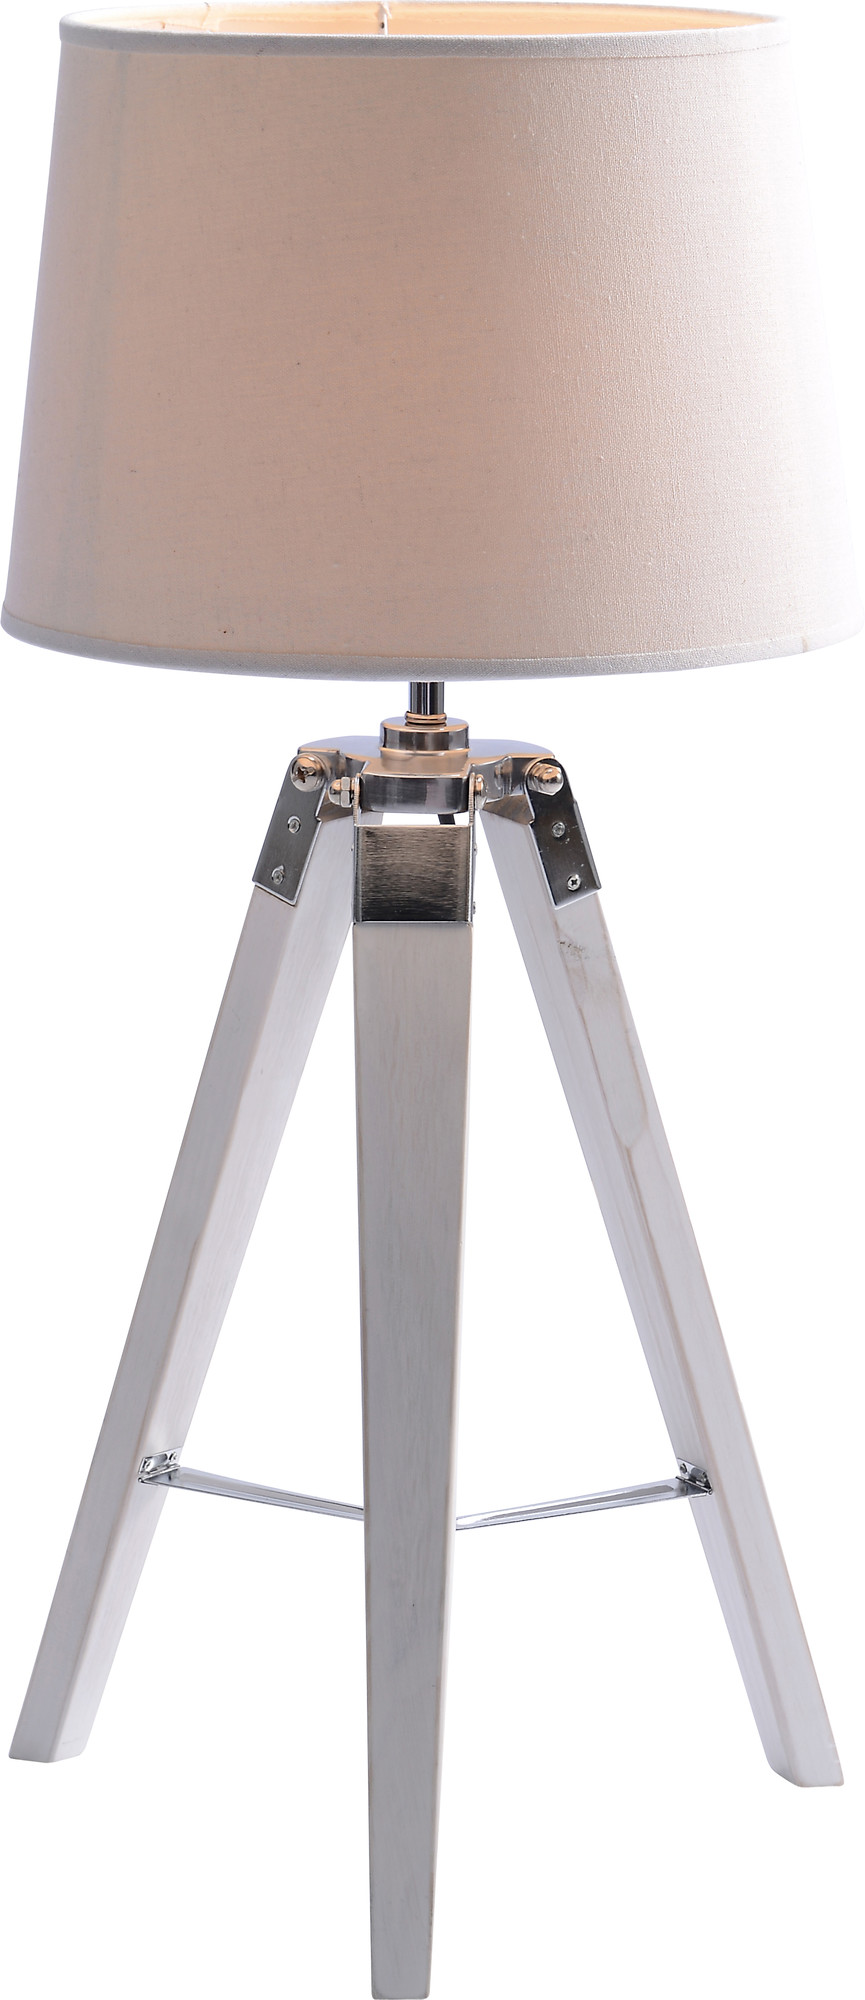 hight resolution of sku neor1006 eric small tripod table lamp is also sometimes listed under the following manufacturer numbers 75003